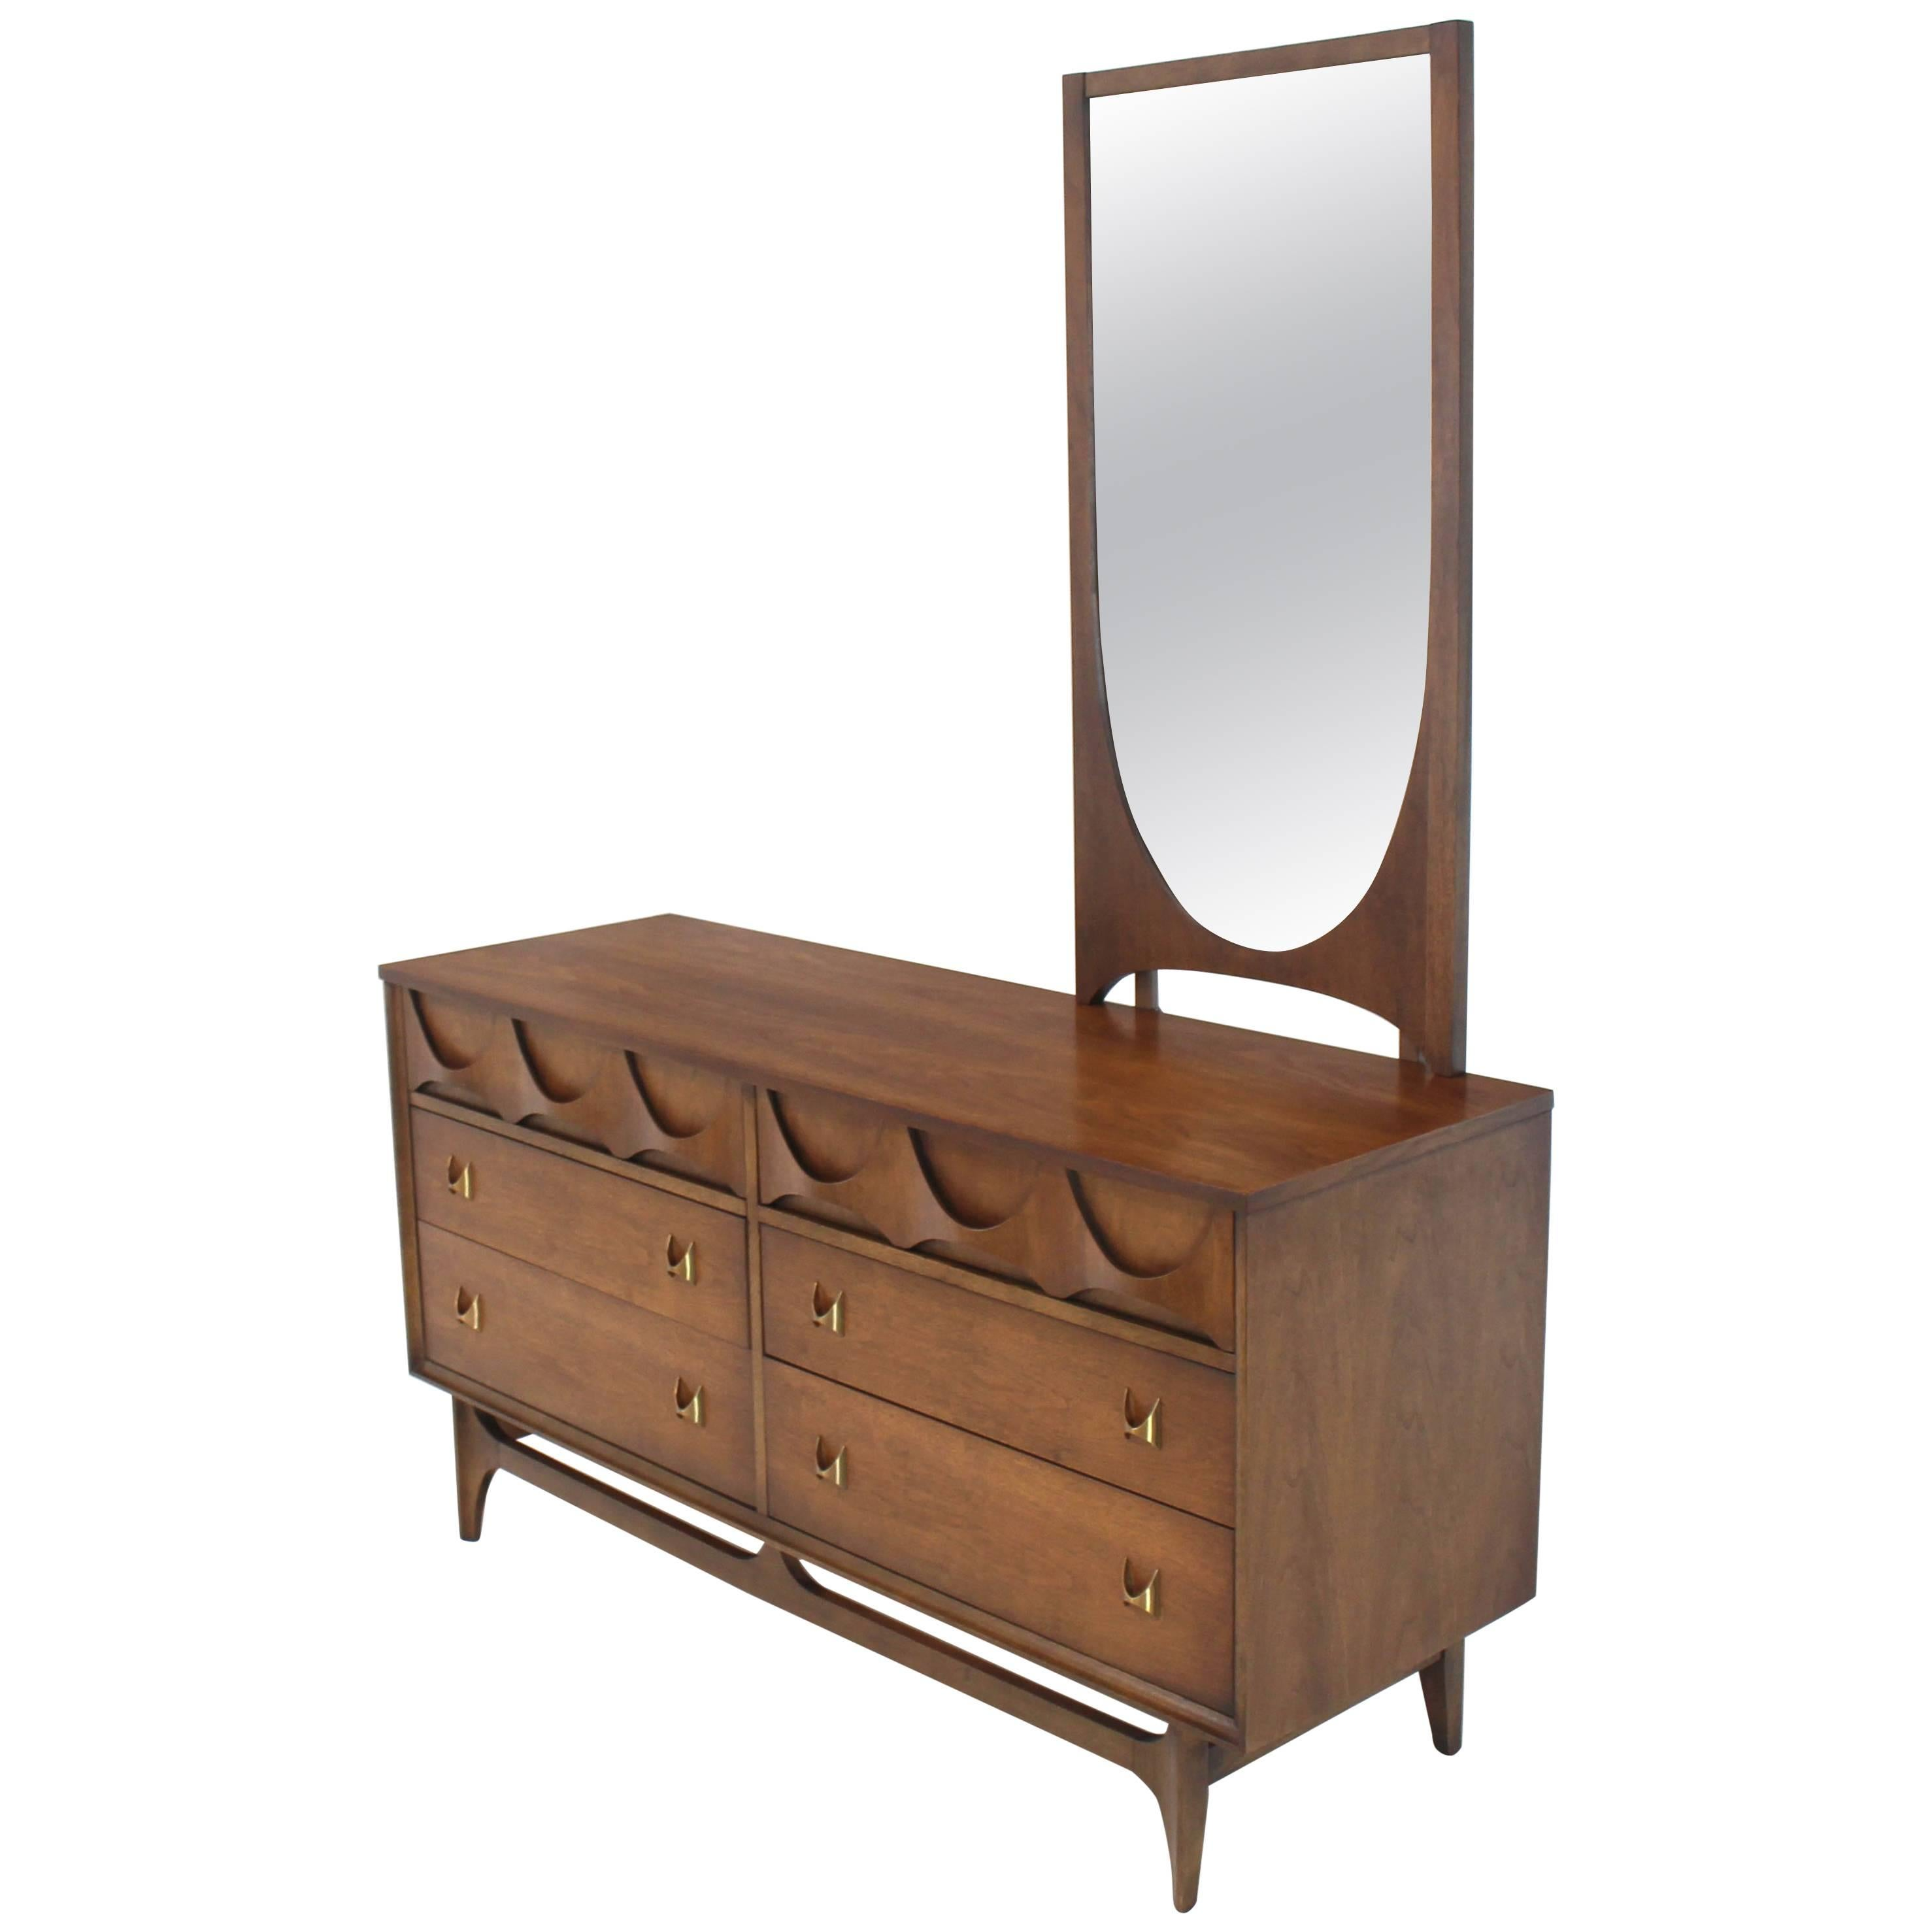 Walnut Sculpted Molded Plywood Drawers Dresser with Mirror